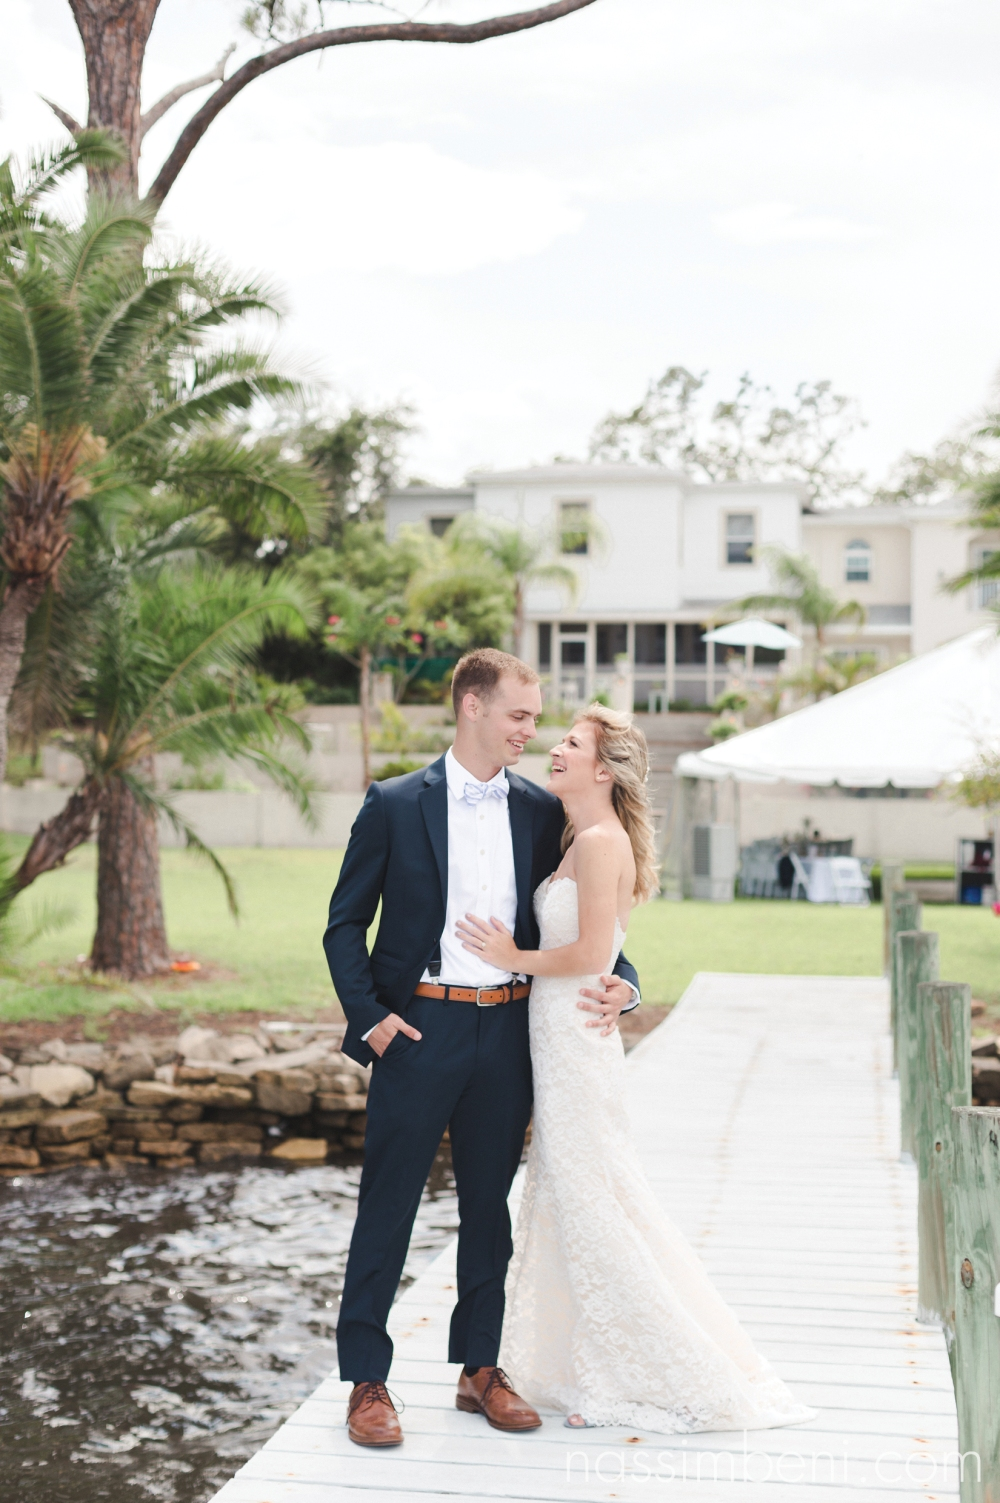 backyard-florida-private-venue-wedding-nassimbeni-photography-29